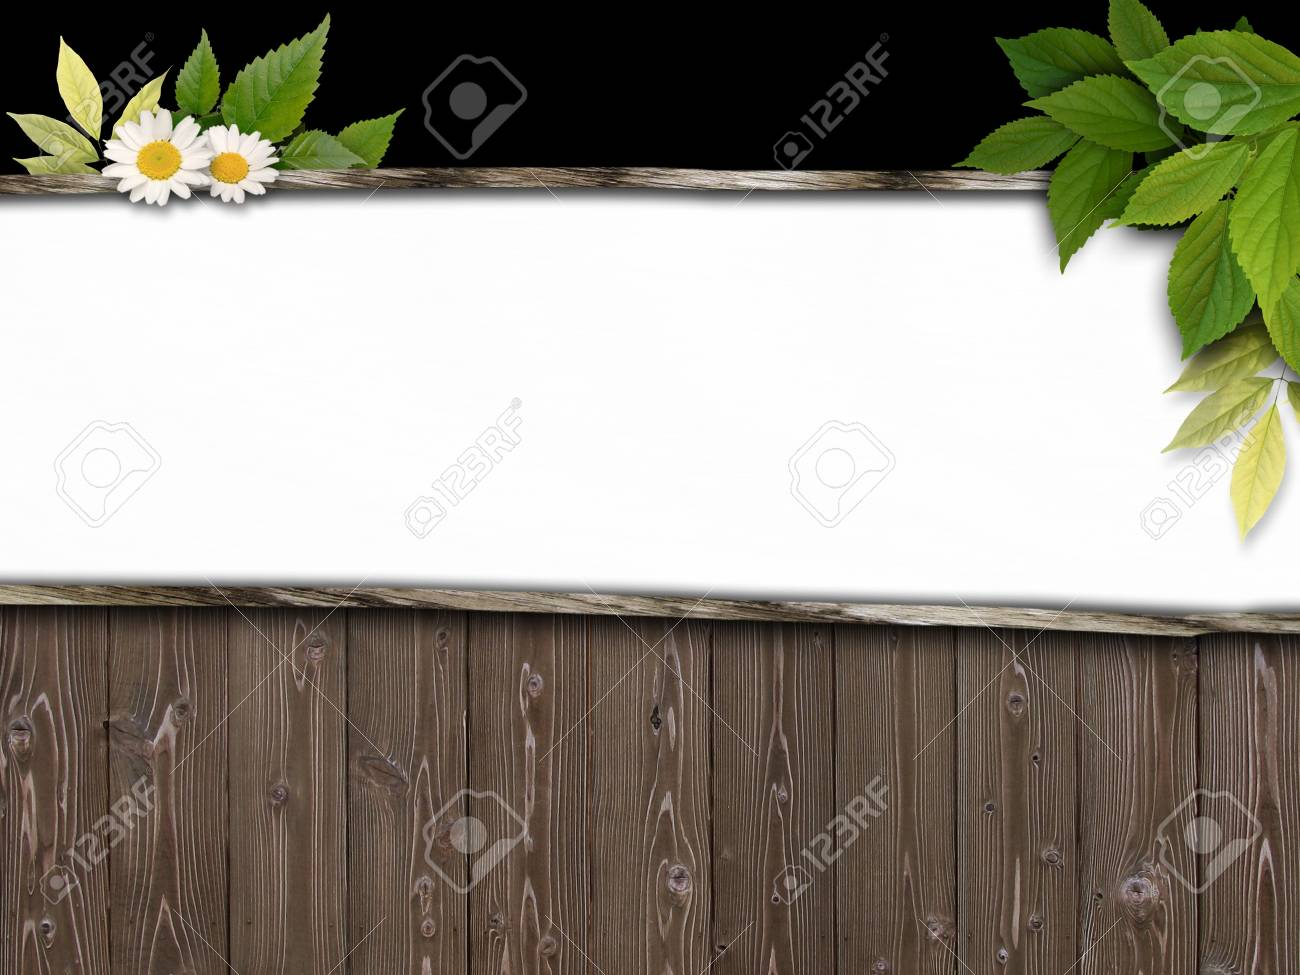 CG synthesis background image of wooden Stock Photo - 8659552